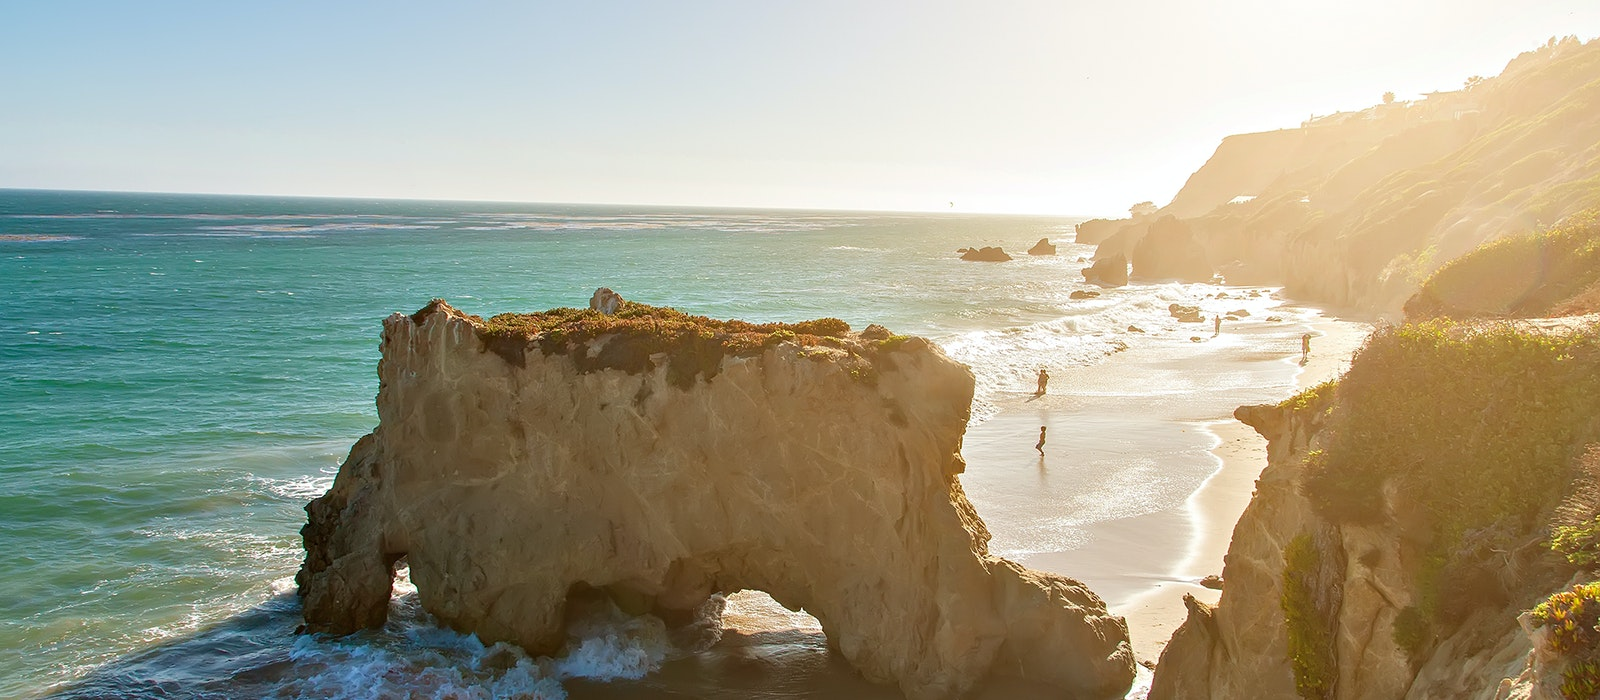 During low tide at El Matador State Beach, you'll be able to walk through the rocky arches.